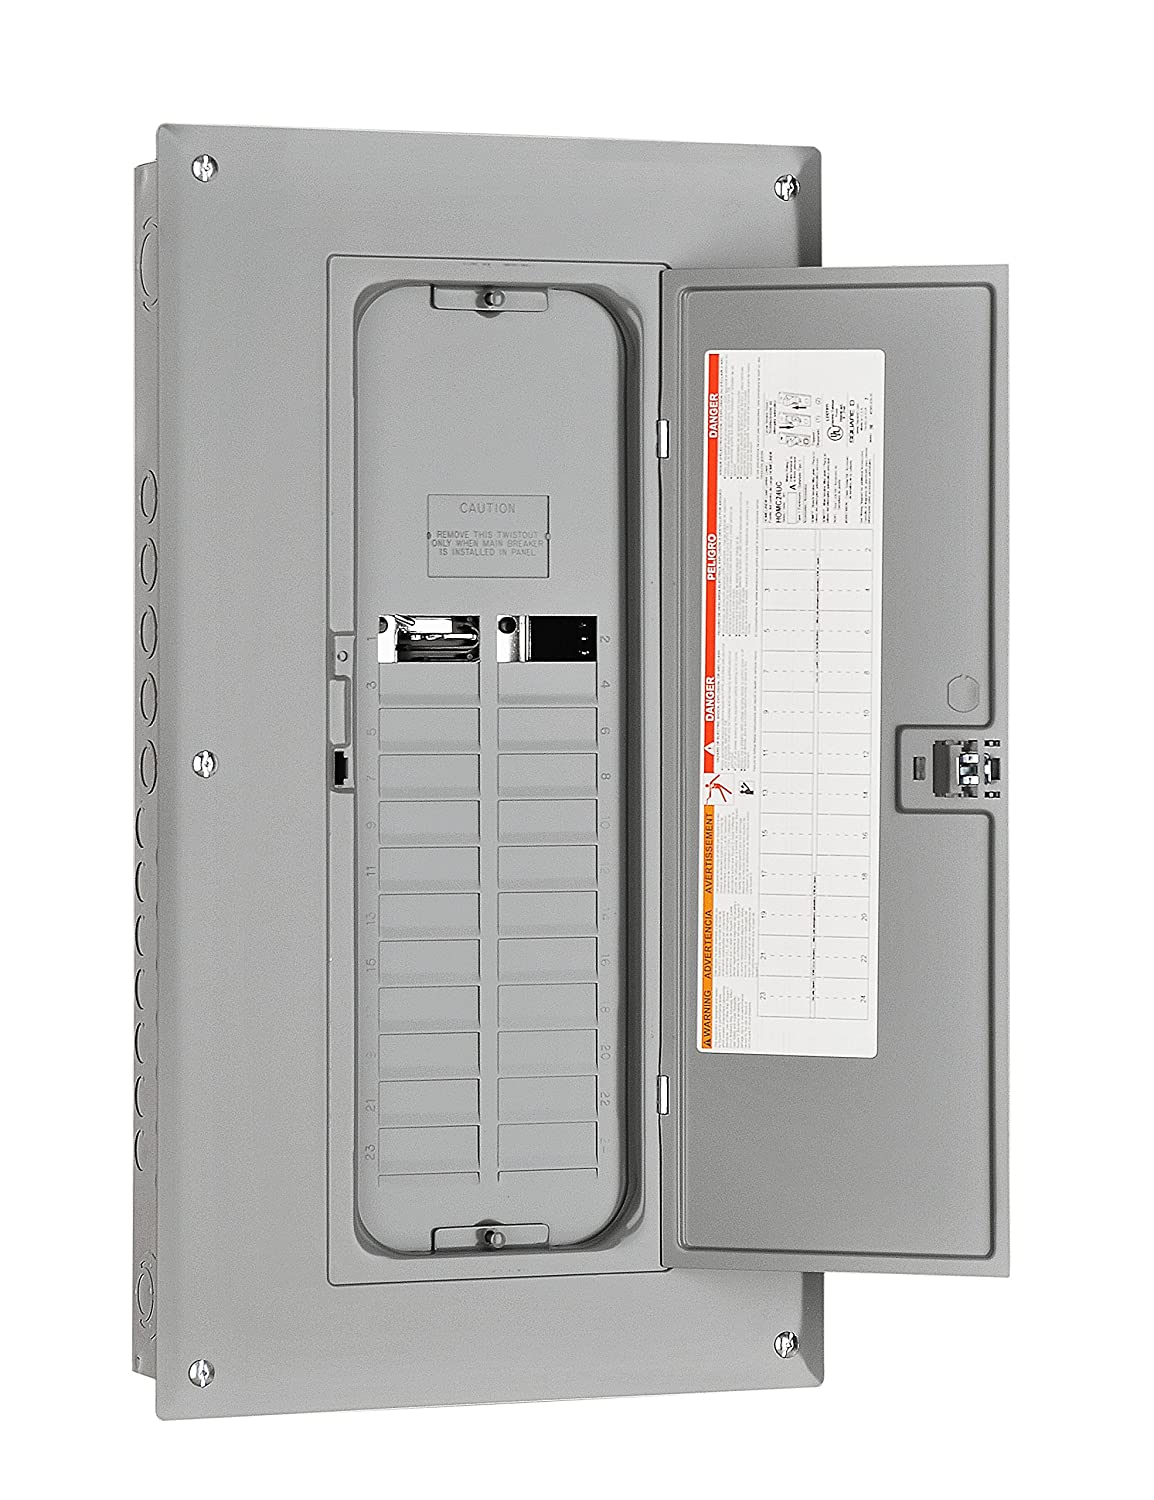 125 Amp Fuse Box Wiring Library A Single Phase Square D 30 By Schneider Electric Hom1632l125pc Homeline 16 Space 32 Circuit